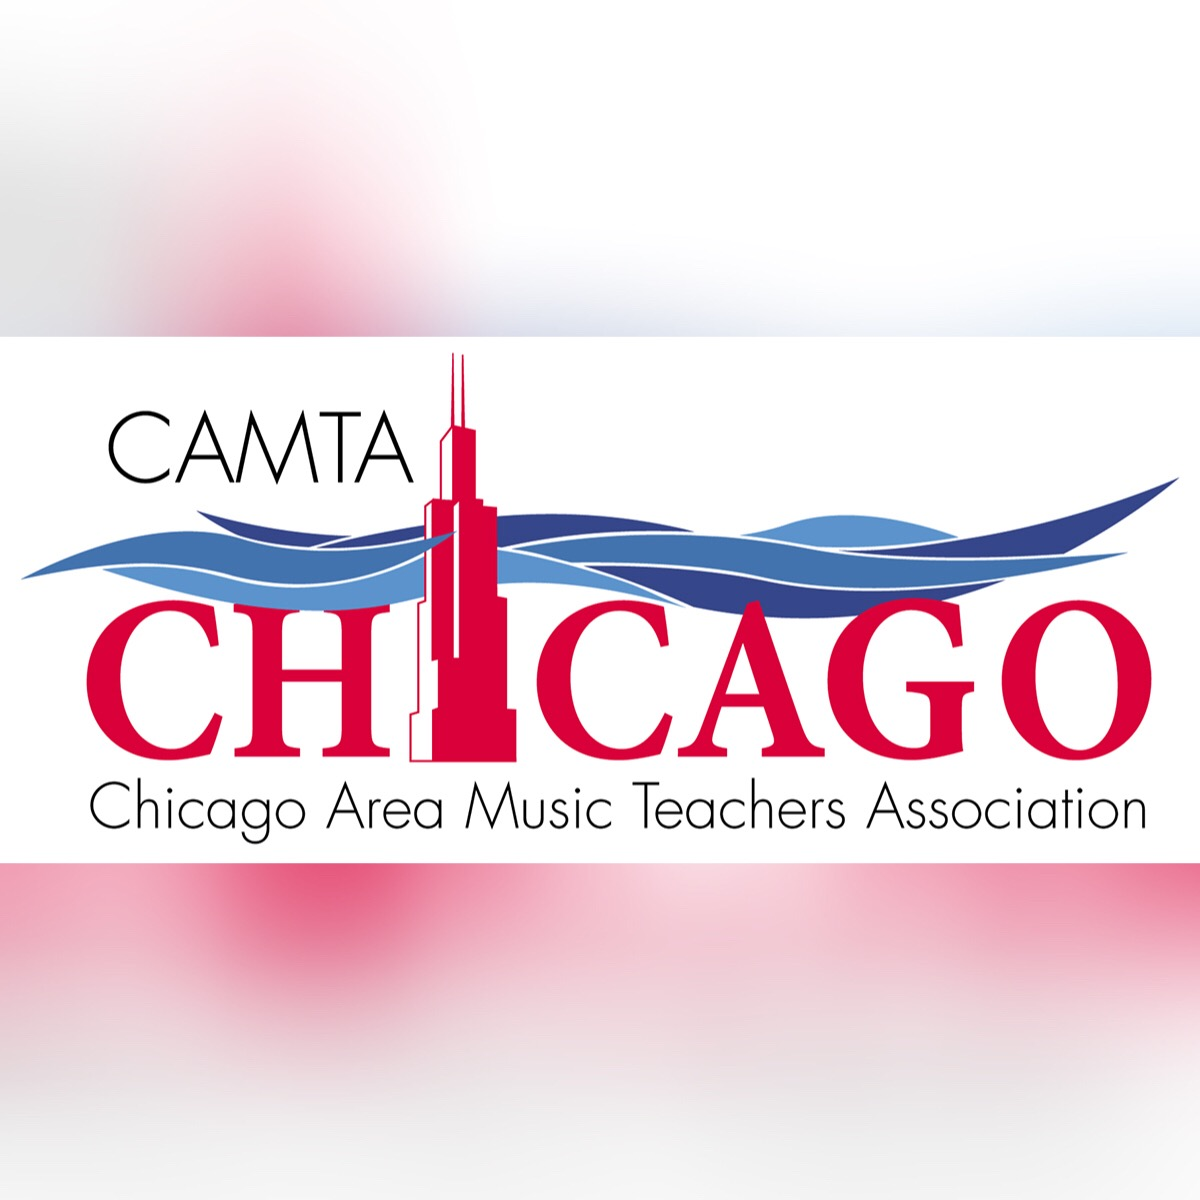 Chicago Area Music Teachers Association